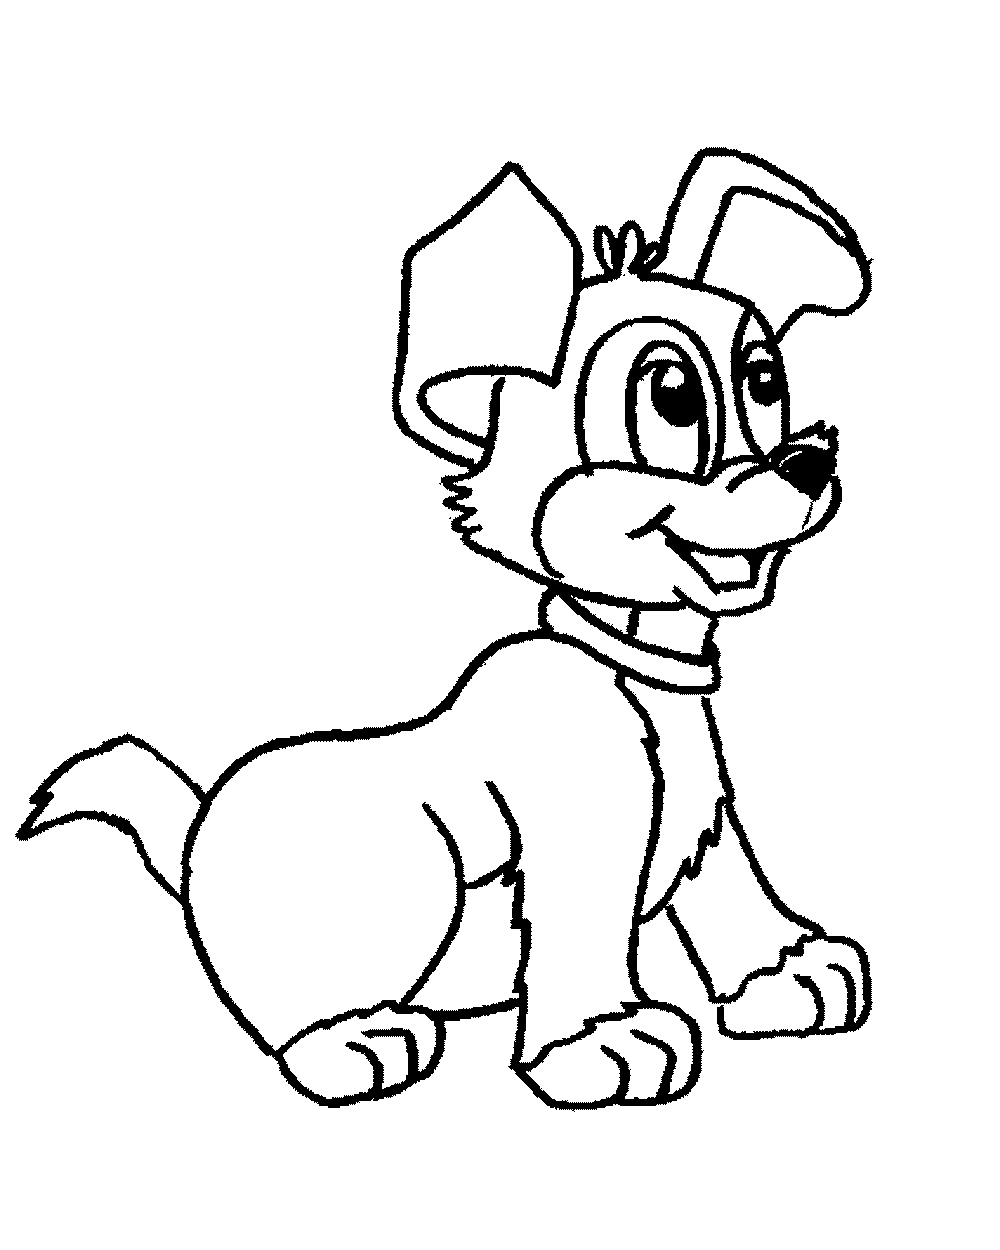 biscuit the dog coloring pages dog coloring pages coloring pages to download and print coloring biscuit the pages dog